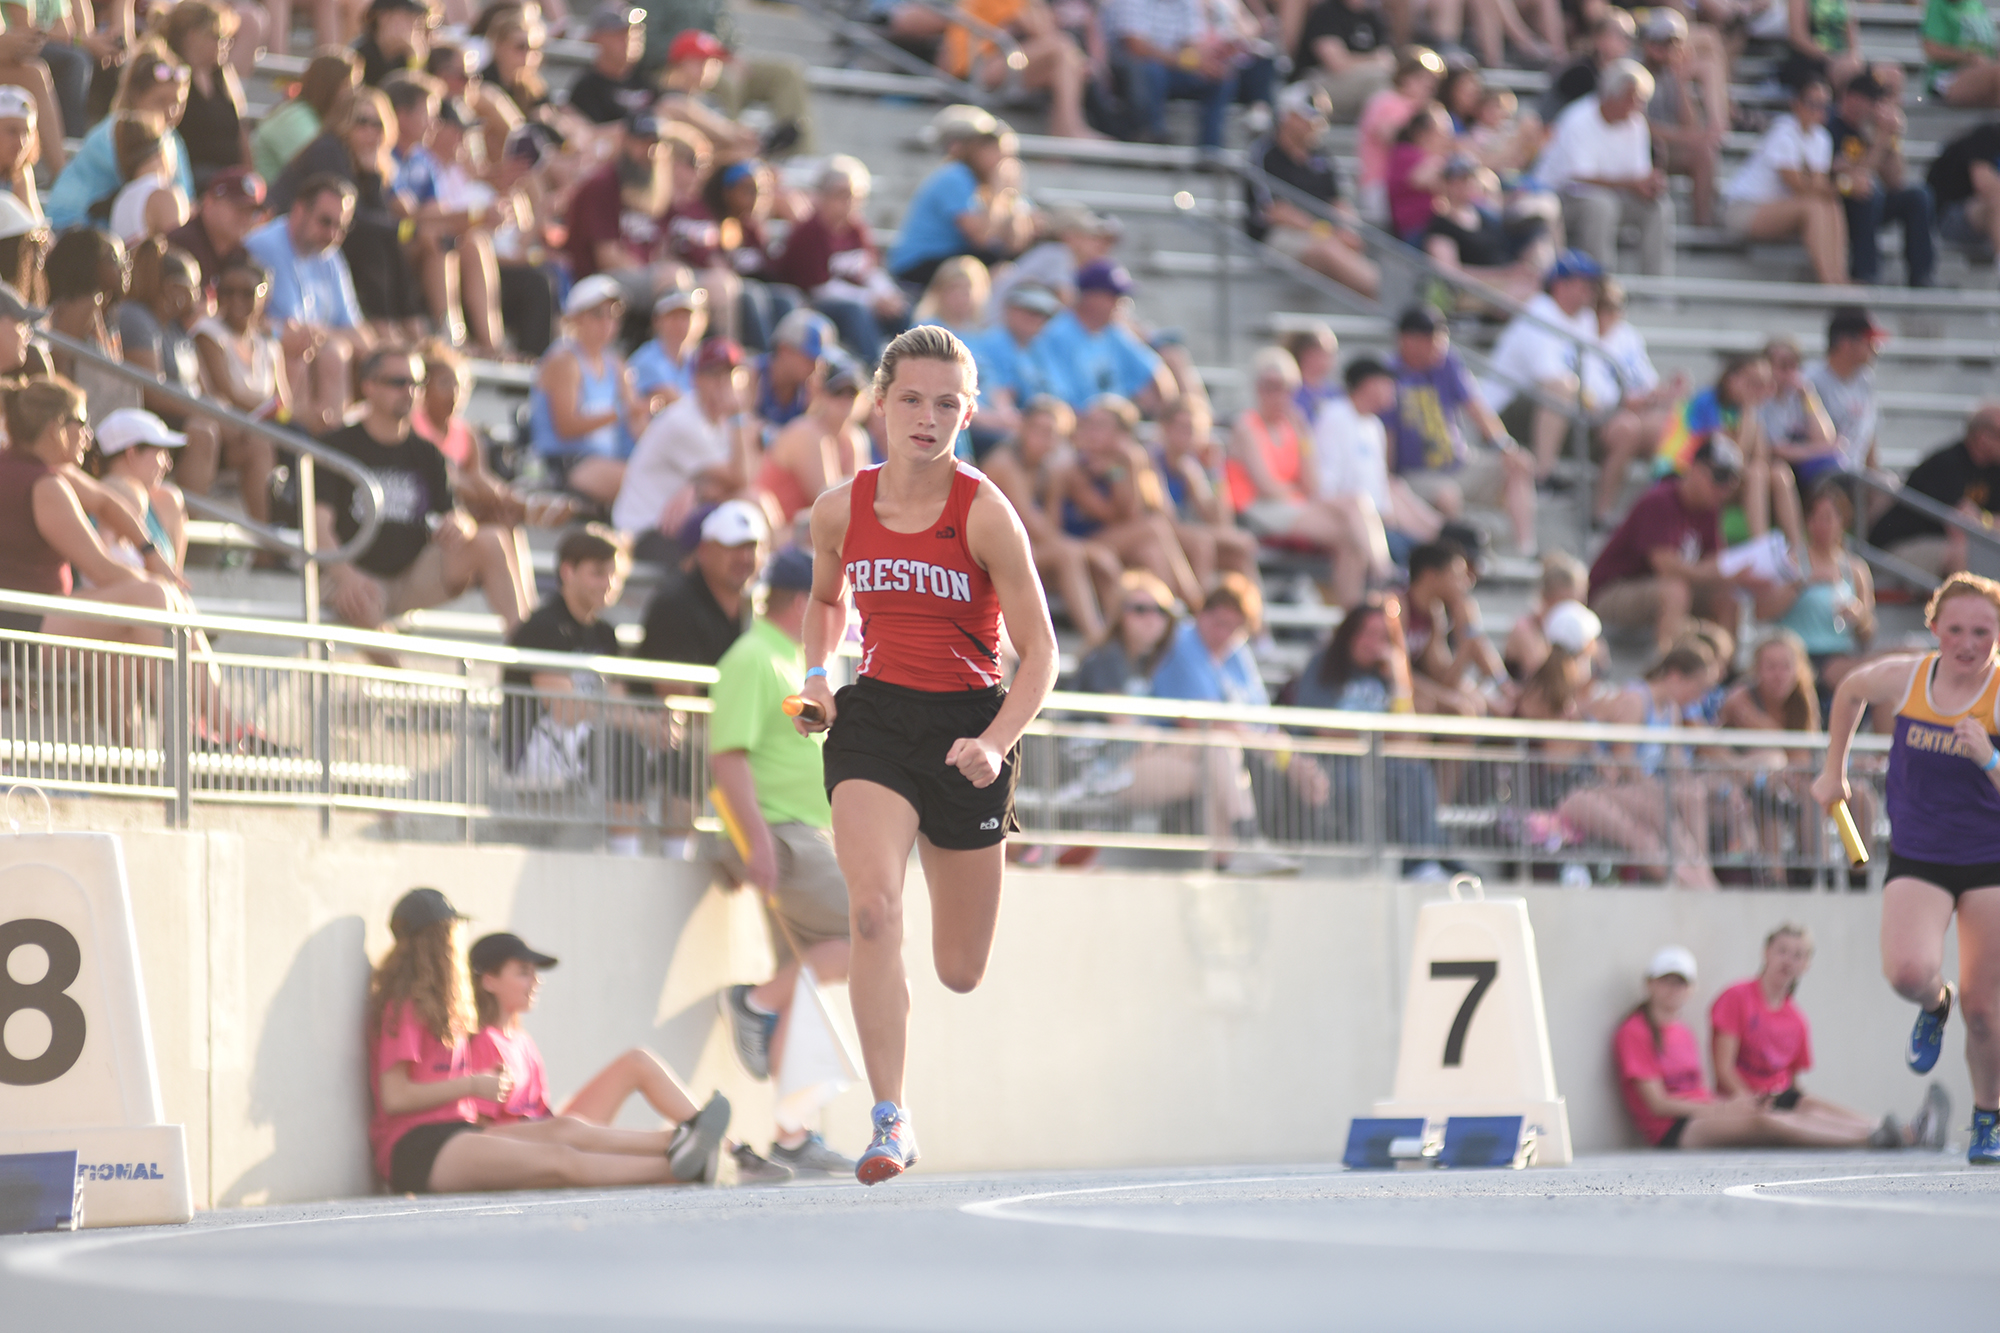 Kiersten Latham runs at the Iowa State Track Meet during her days at Creston High School